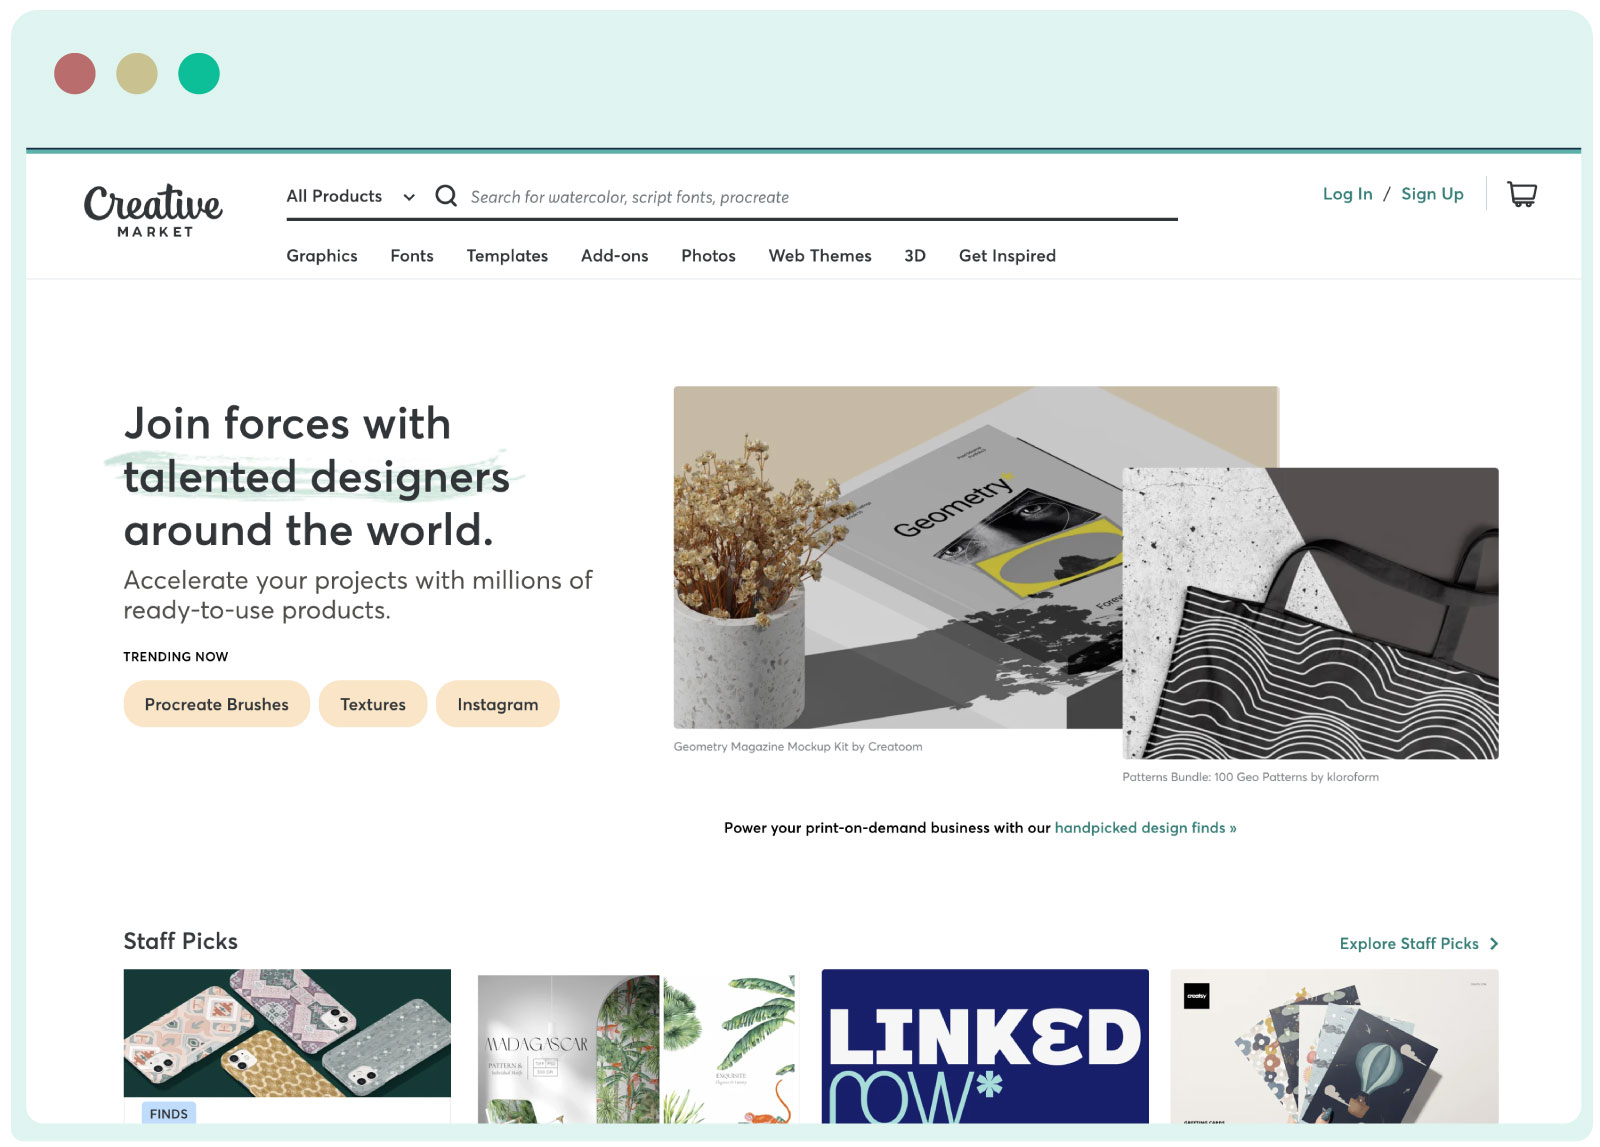 Creative Market- fonts, graphics, themes, photos, and templates